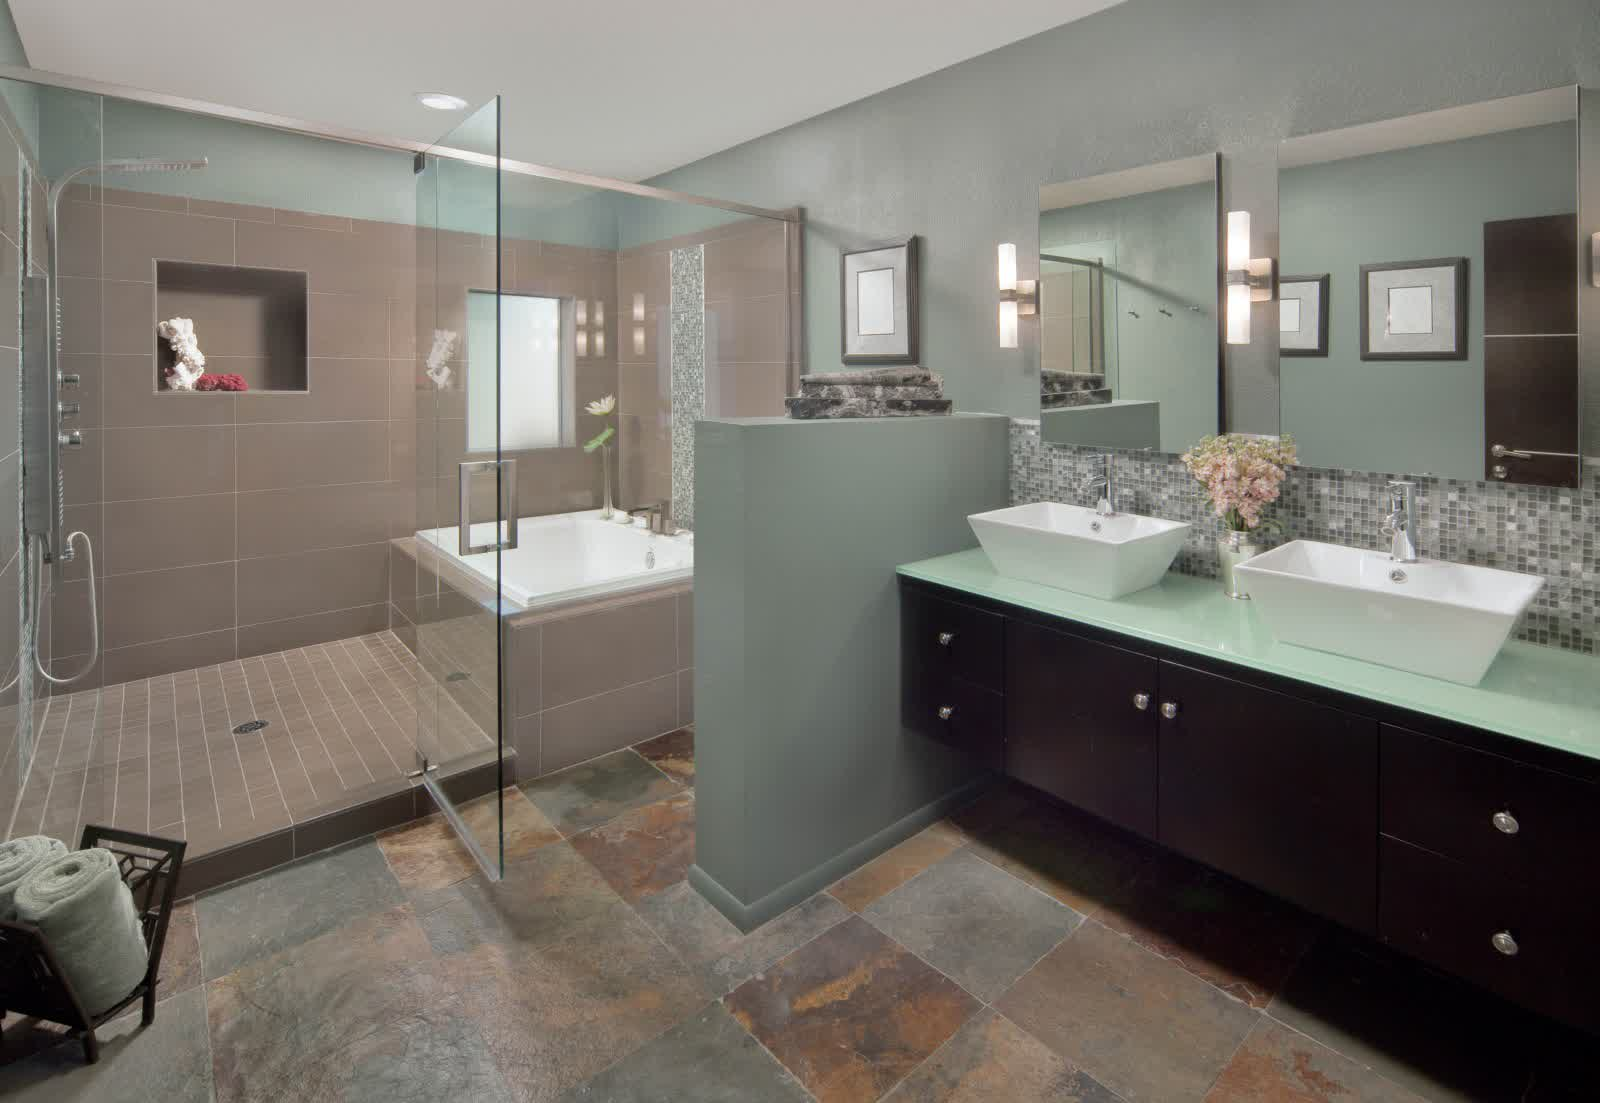 Transform Your Ordinary Bathroom To A Luxury With Master Bath Remodel HomesFeed